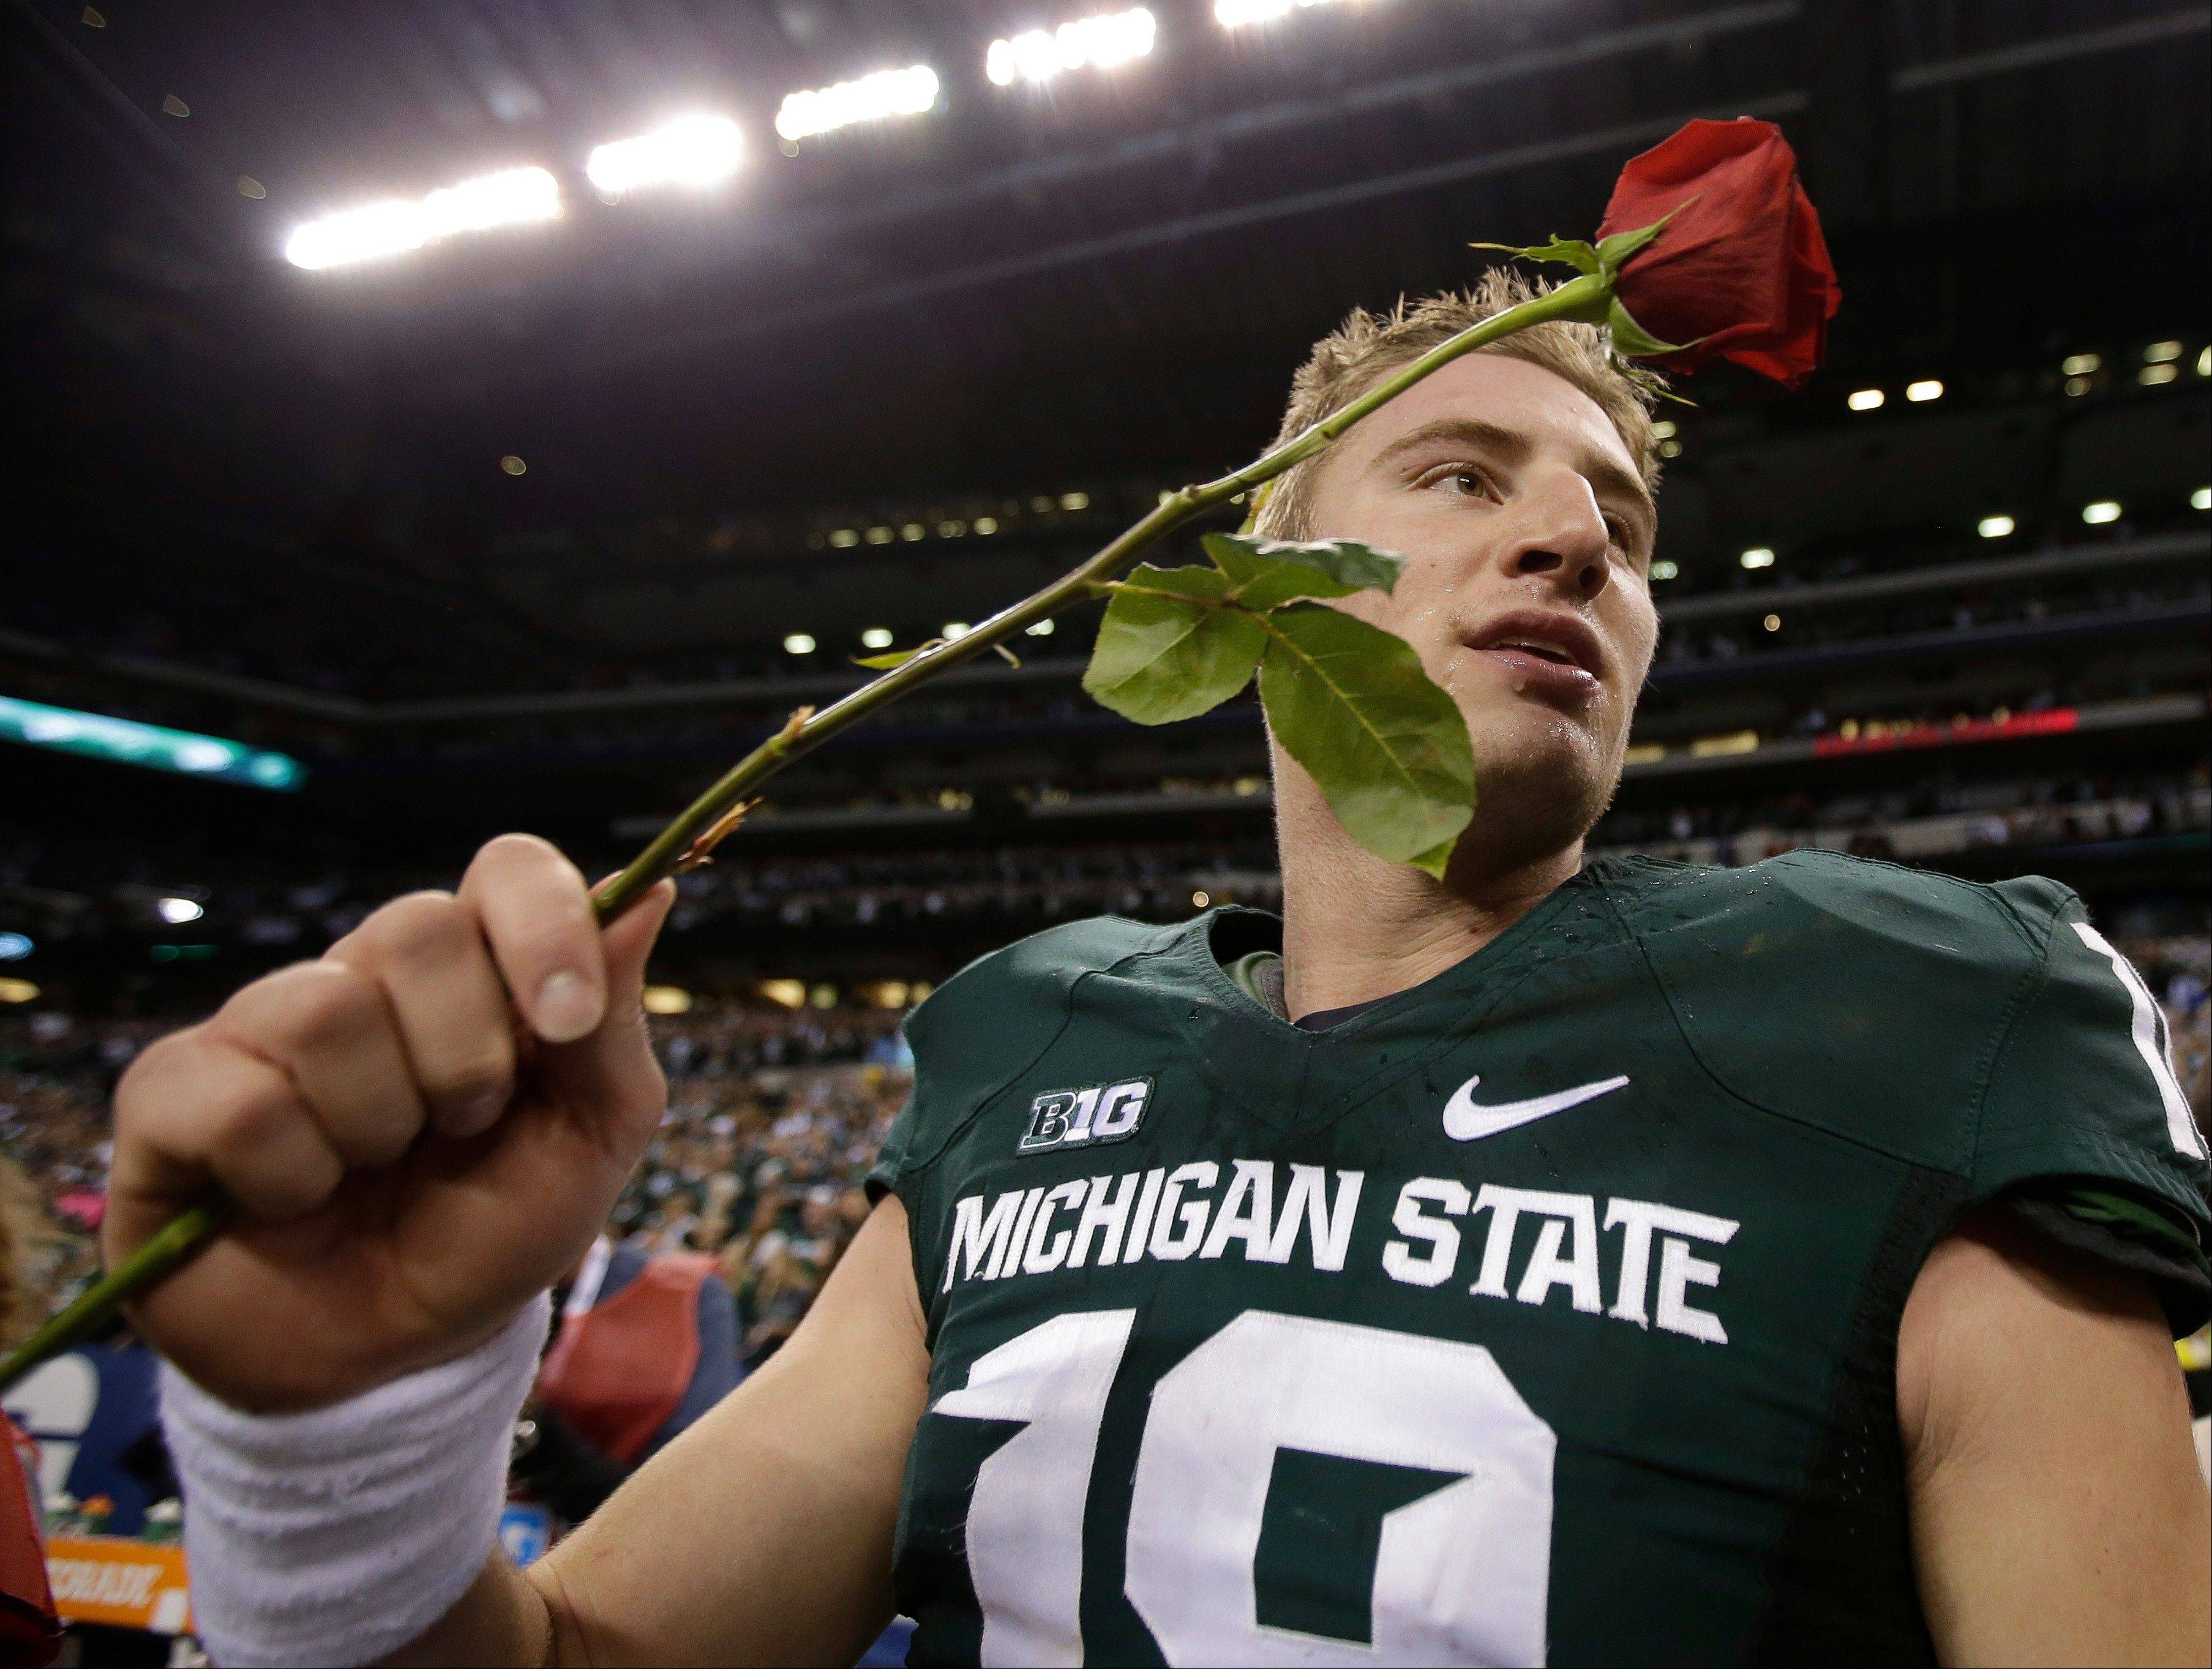 Michigan State�s Connor Cook holds a rose after Michigan State defeated Ohio State, 34-24 in the Big Ten Conference championship NCAA college football game Saturday Dec. 7, 2013, in Indianapolis.